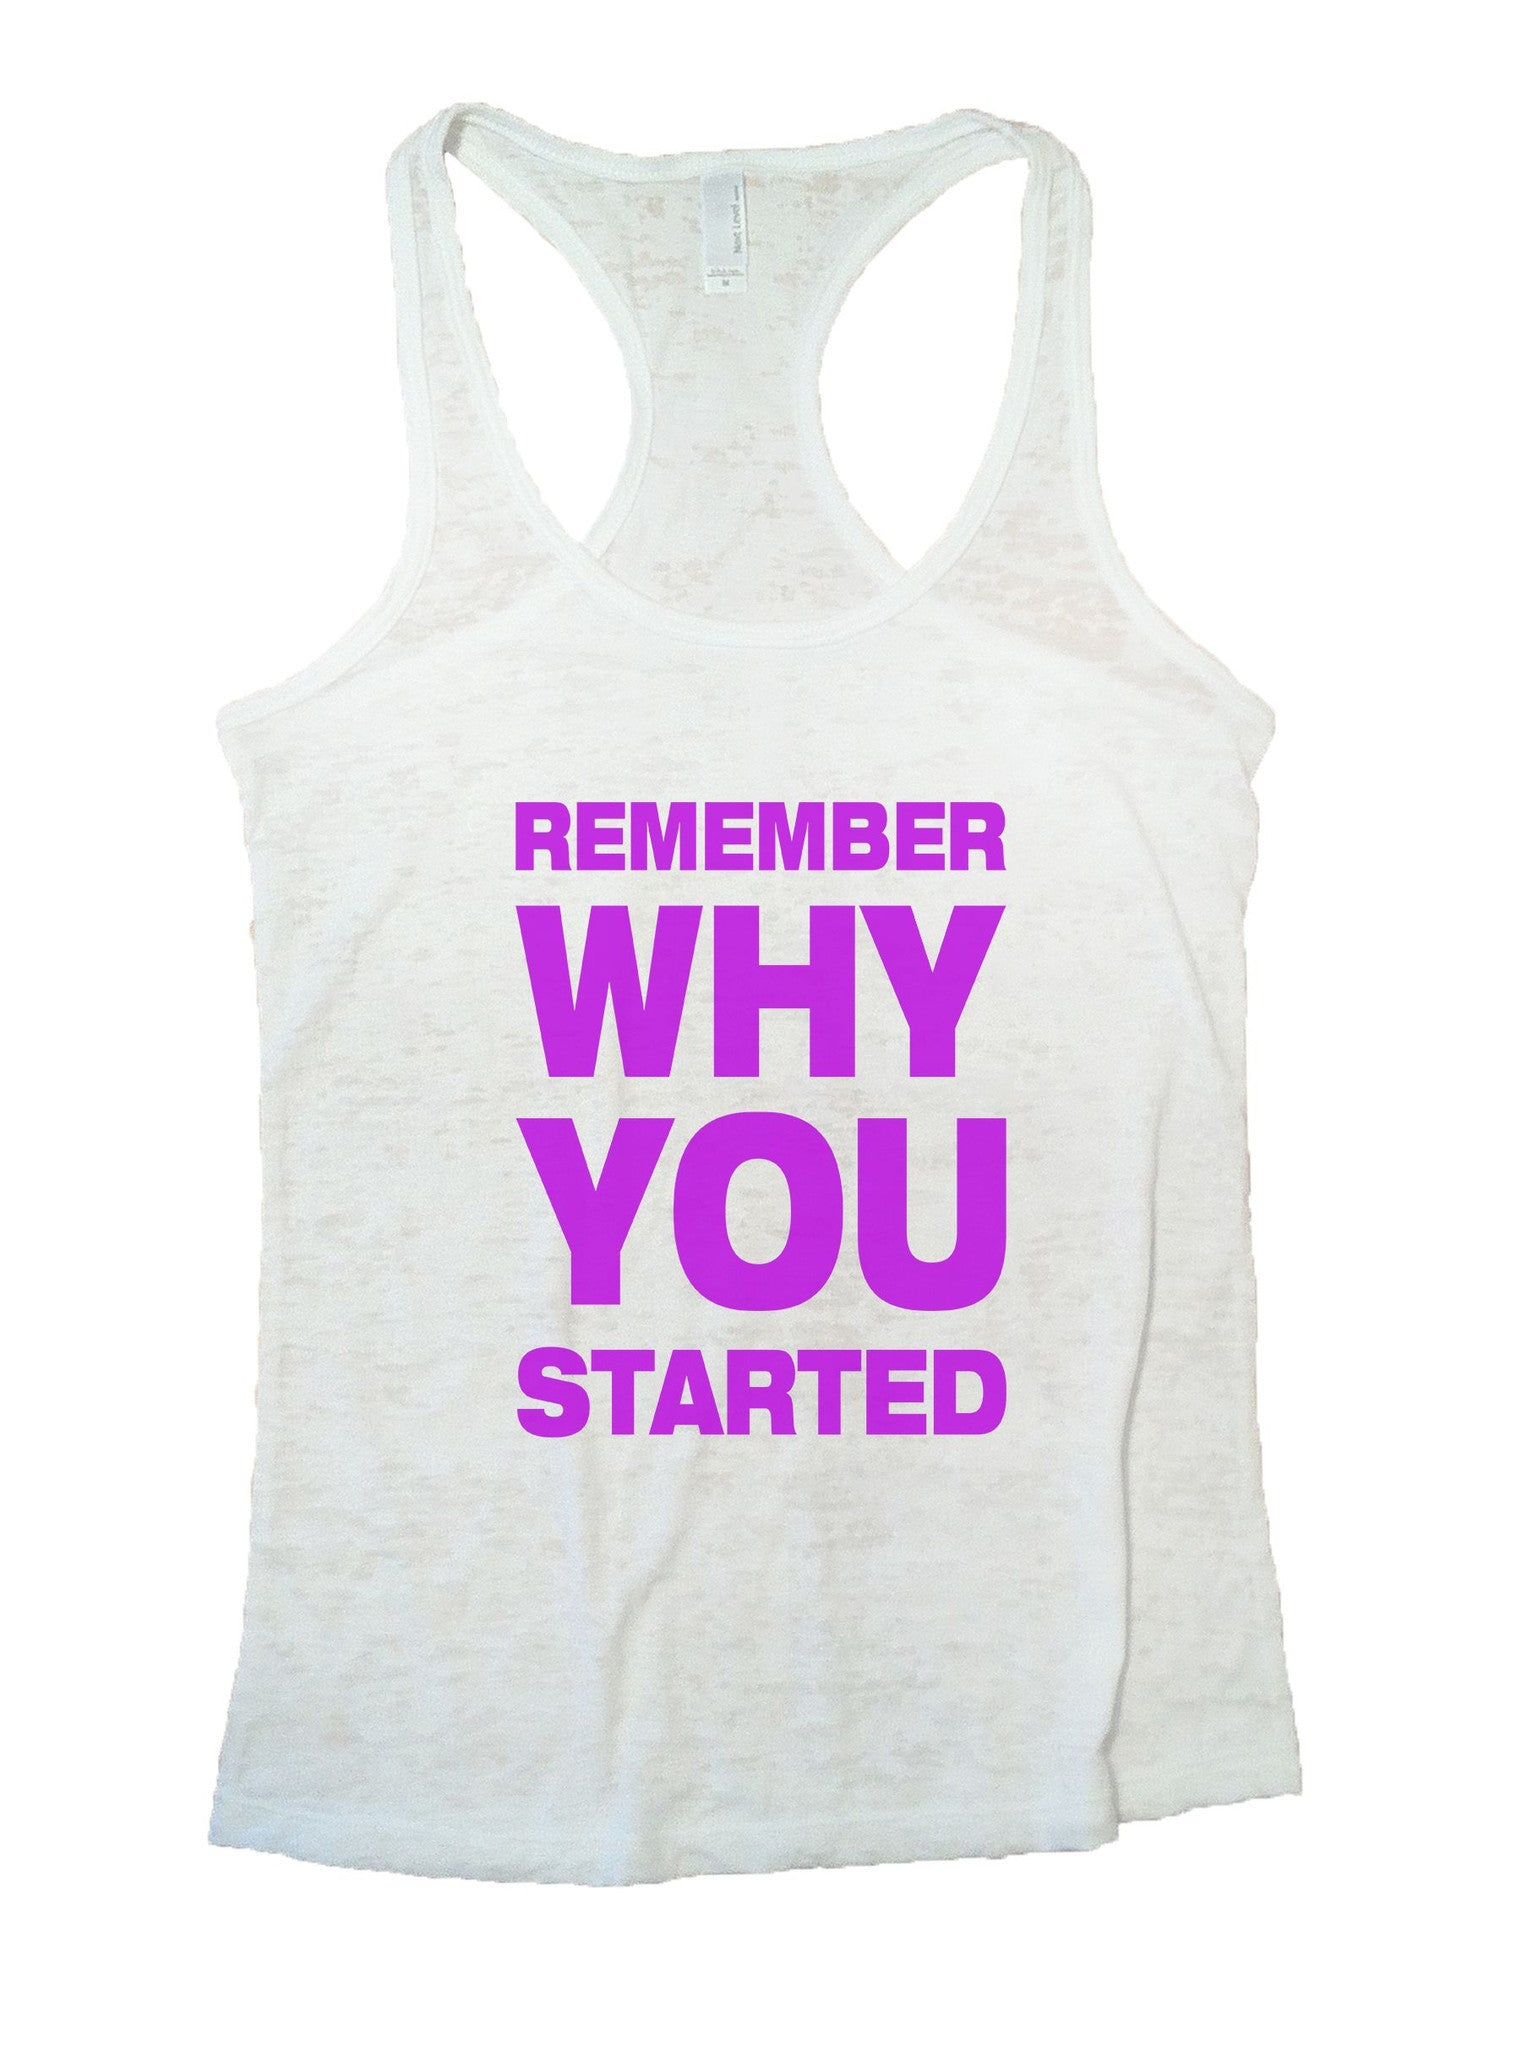 Remember Why You Started Burnout Tank Top By BurnoutTankTops.com - 852 - Funny Shirts Tank Tops Burnouts and Triblends  - 6